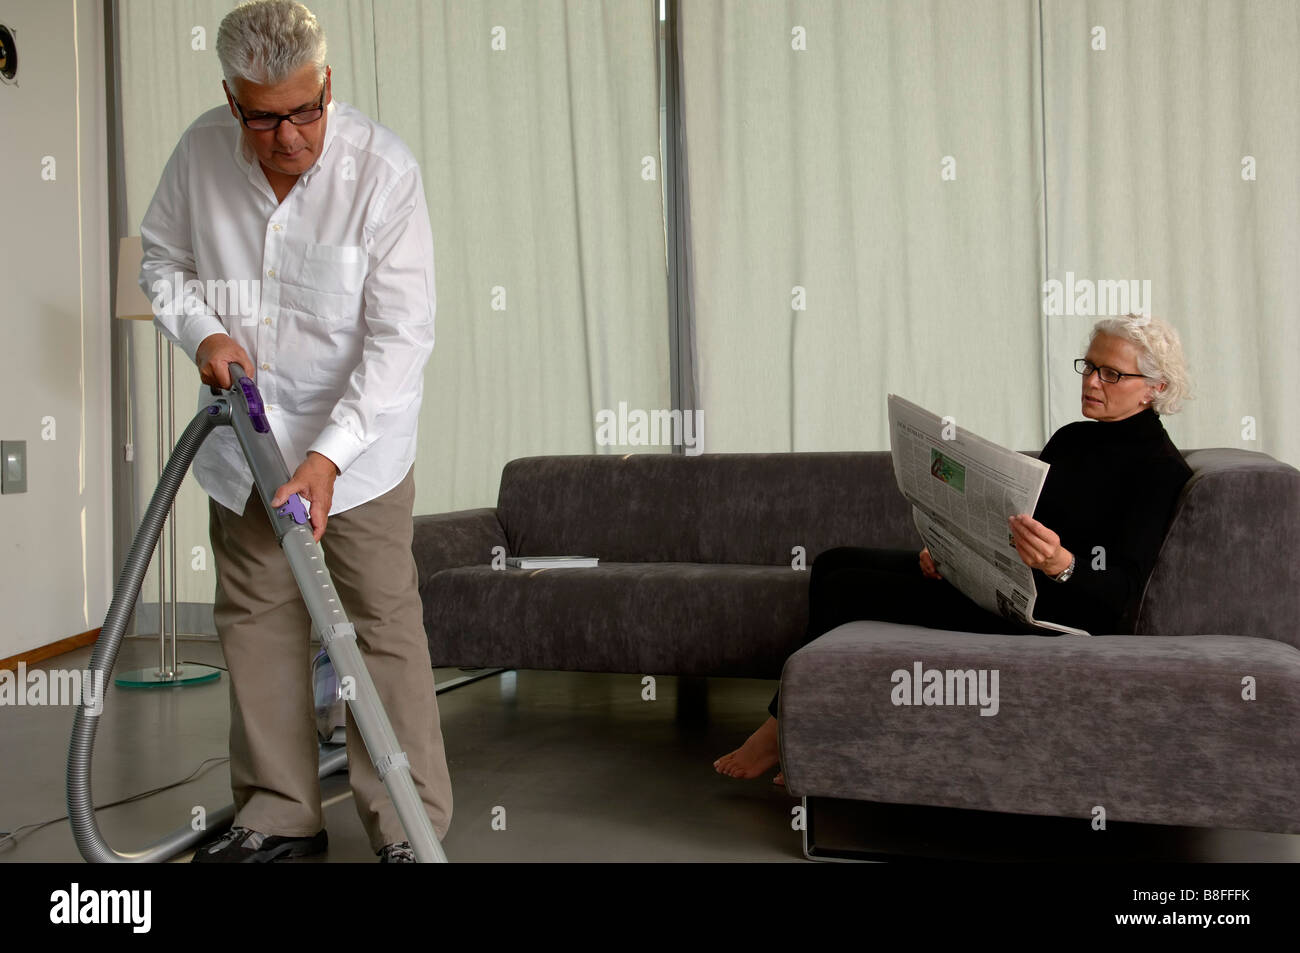 Senior man is vacuum-cleaning while his wife is reading newspaper - Stock Image